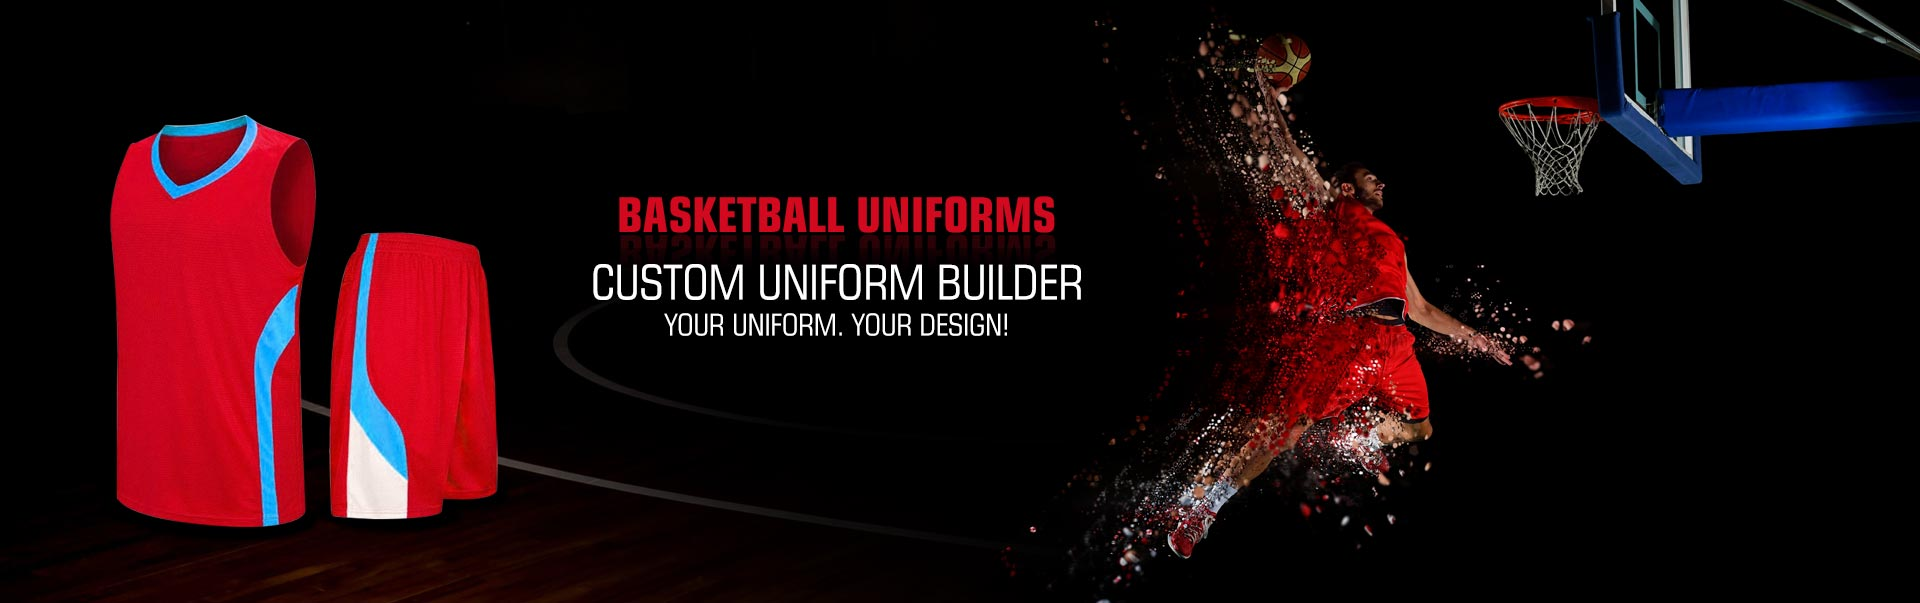 Basketball Uniforms Wholesaler, Suppliers in Mckinney